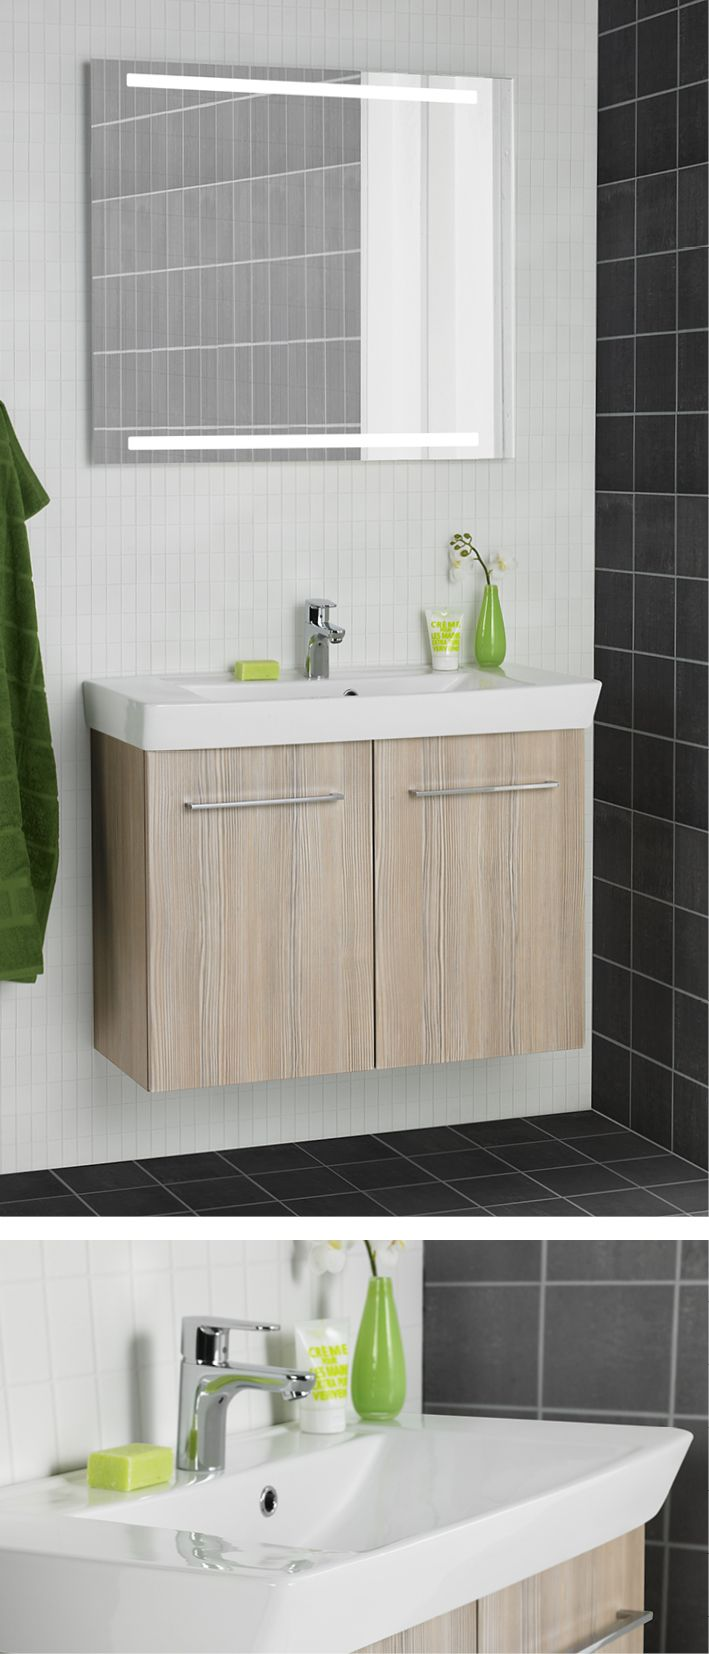 Large washbasin and ample shelf space for toiletries or accessories, combined in a fabulous design.